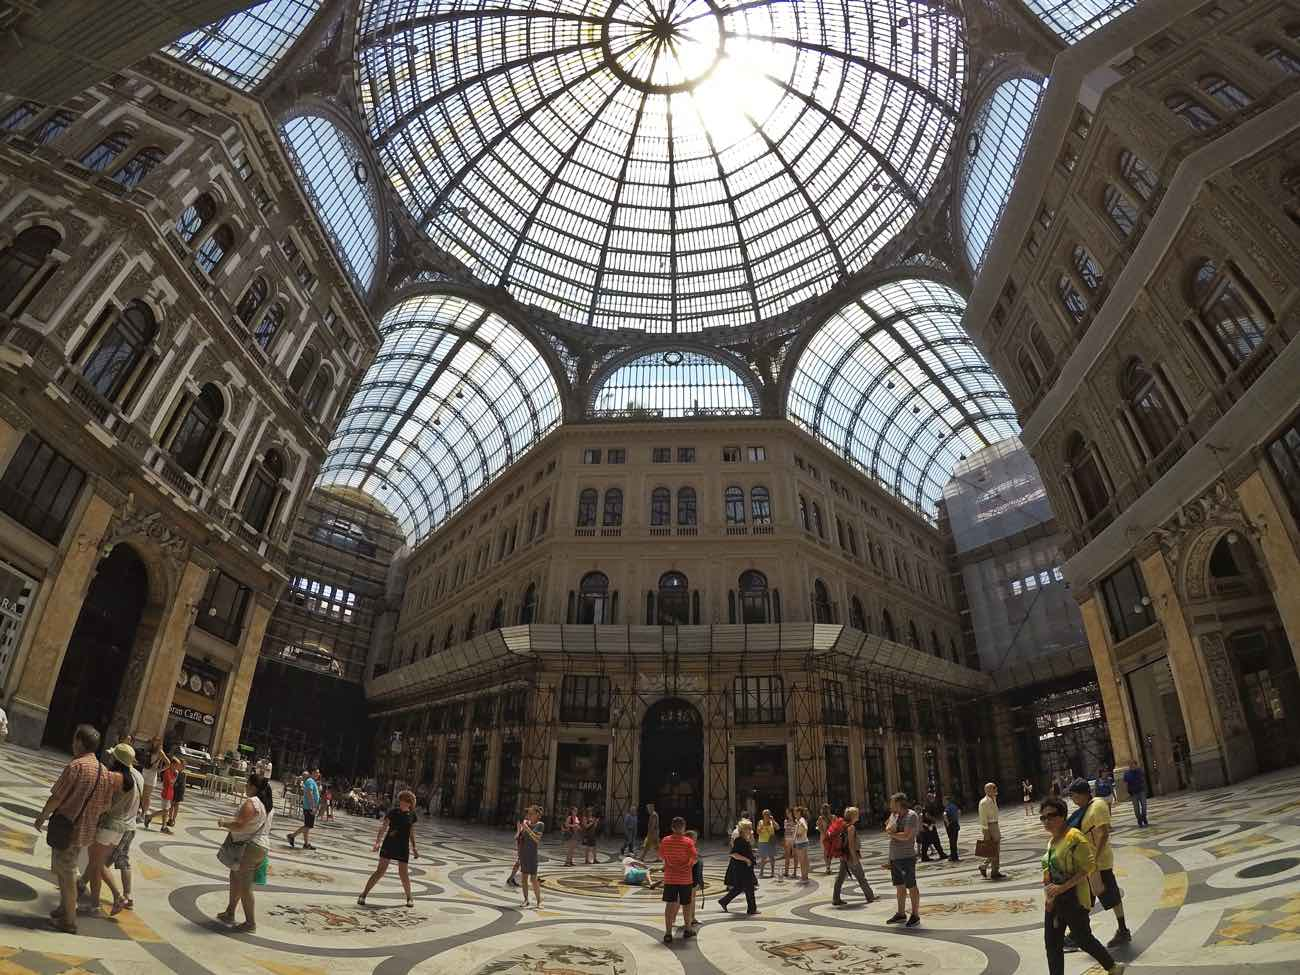 is naples safe for tourists in 2017 - galleria umberto I.